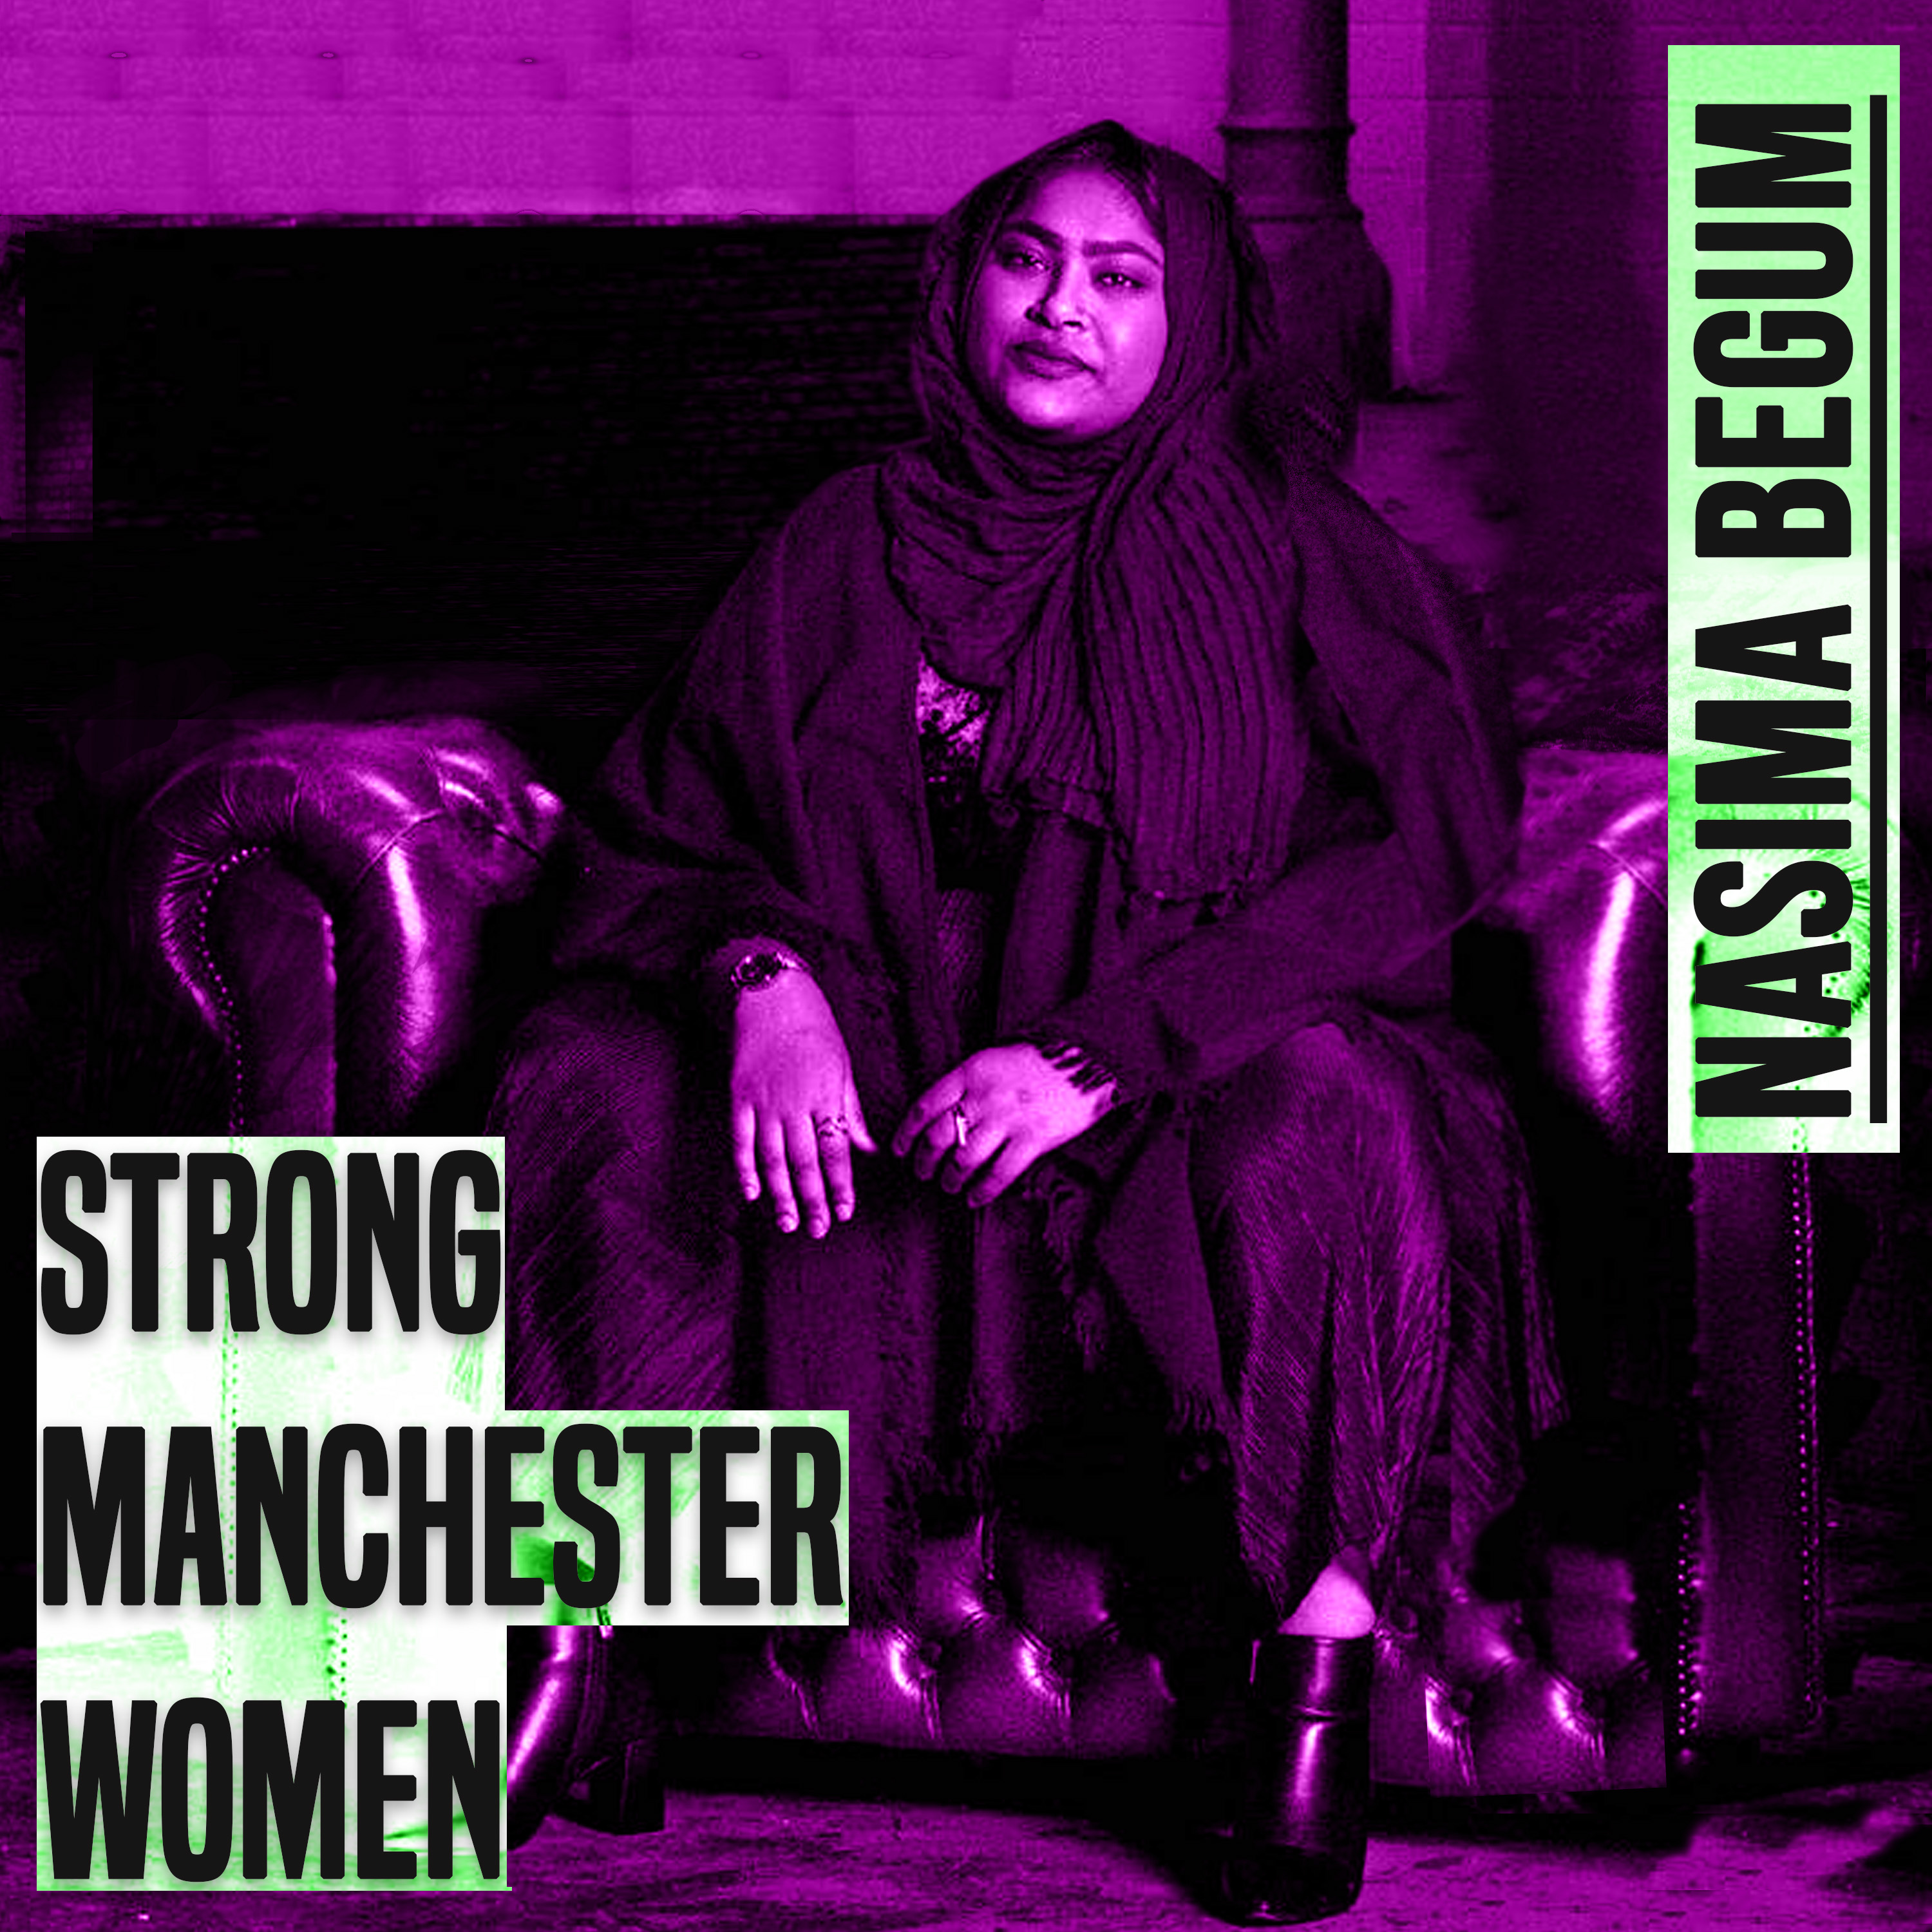 A photo of a woman sitting on a leather chair. She is wearing dark clothes and has her hands rested on her knees. She is wearing a headscarf and looking directly athead, to the camera. The picture has a purple hue to it. On the leff of the picture are the words 'strong manchester women' on the right 'Nasima Begum' - both in capital and grey colour letters